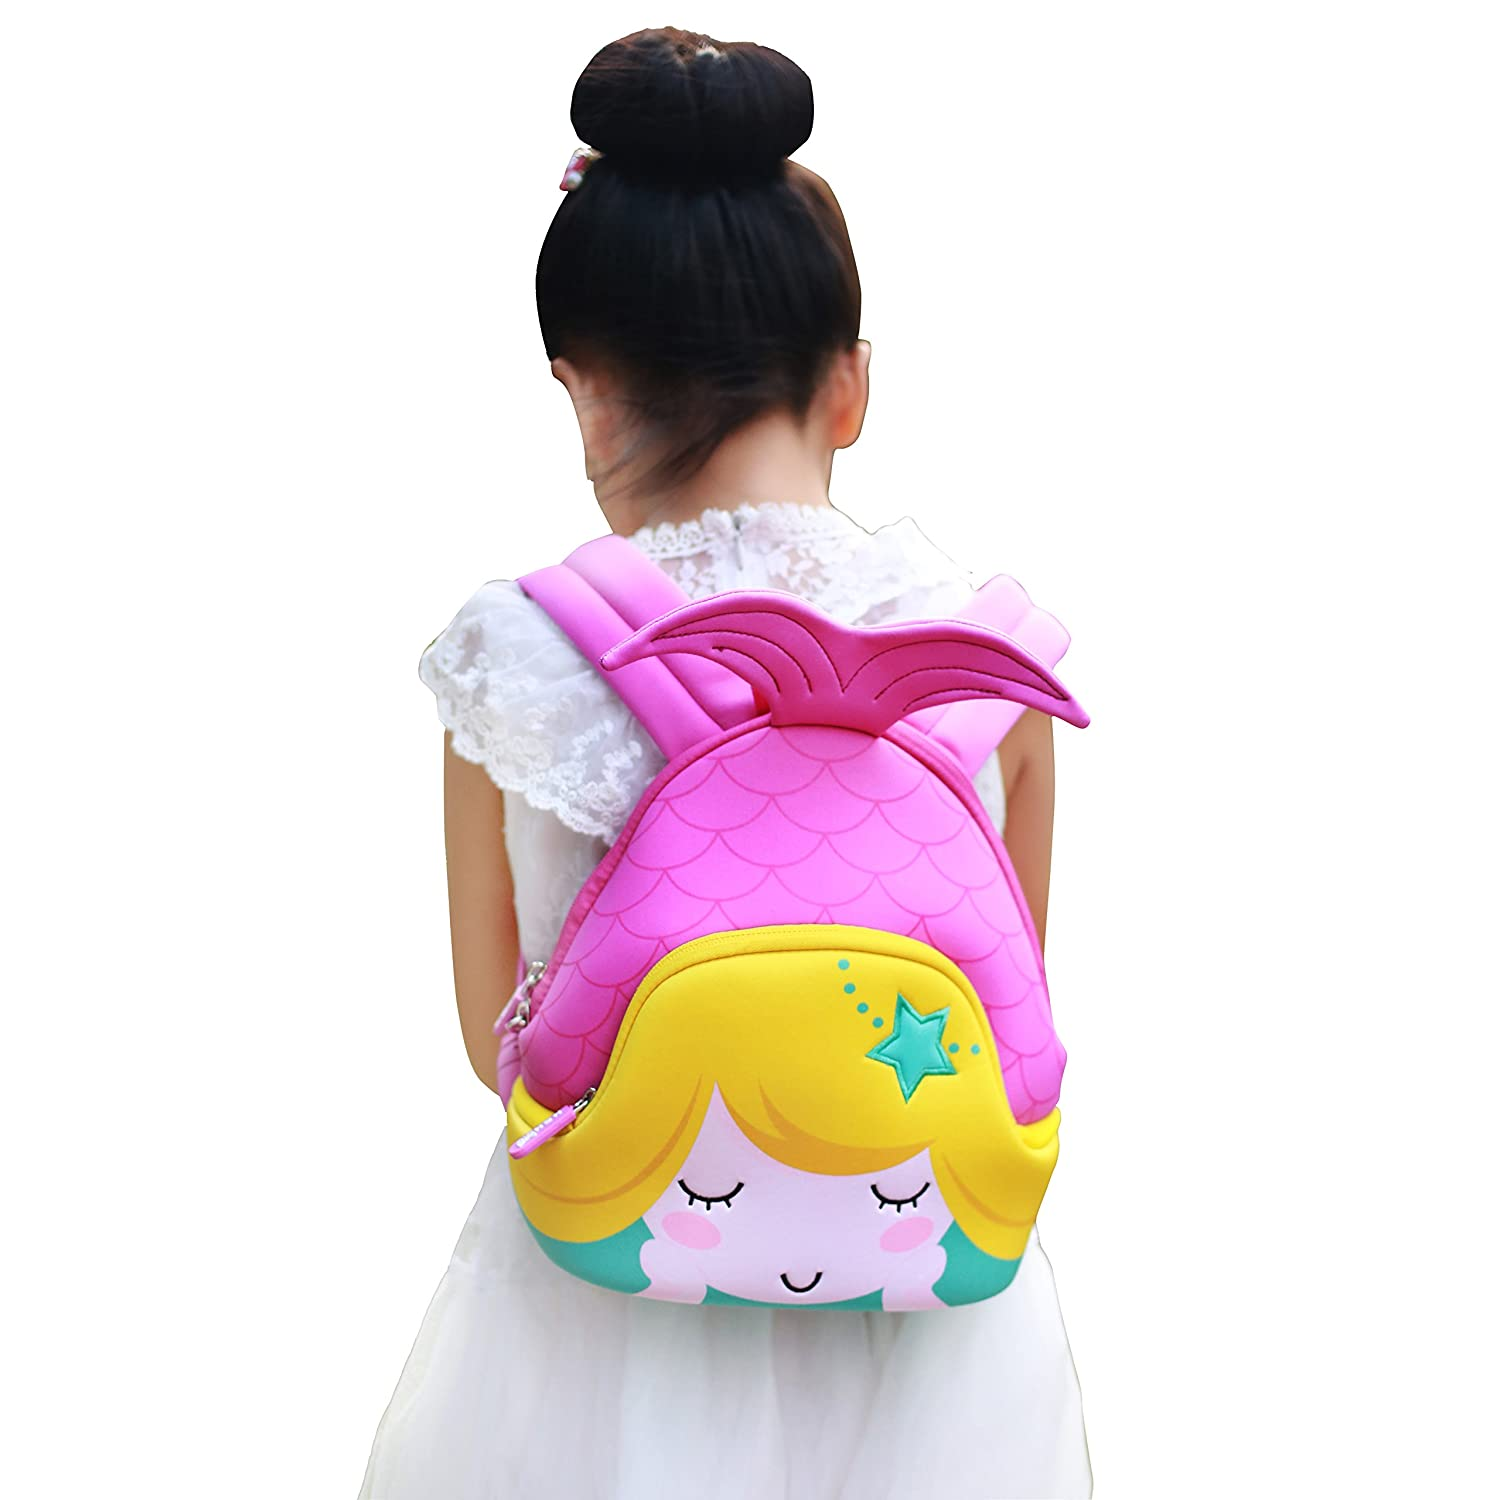 Nohoo Kids Mermaid Backpack 3D Cute Sea Cartoon School Girls twins Bags (3D-mermaid-purple)